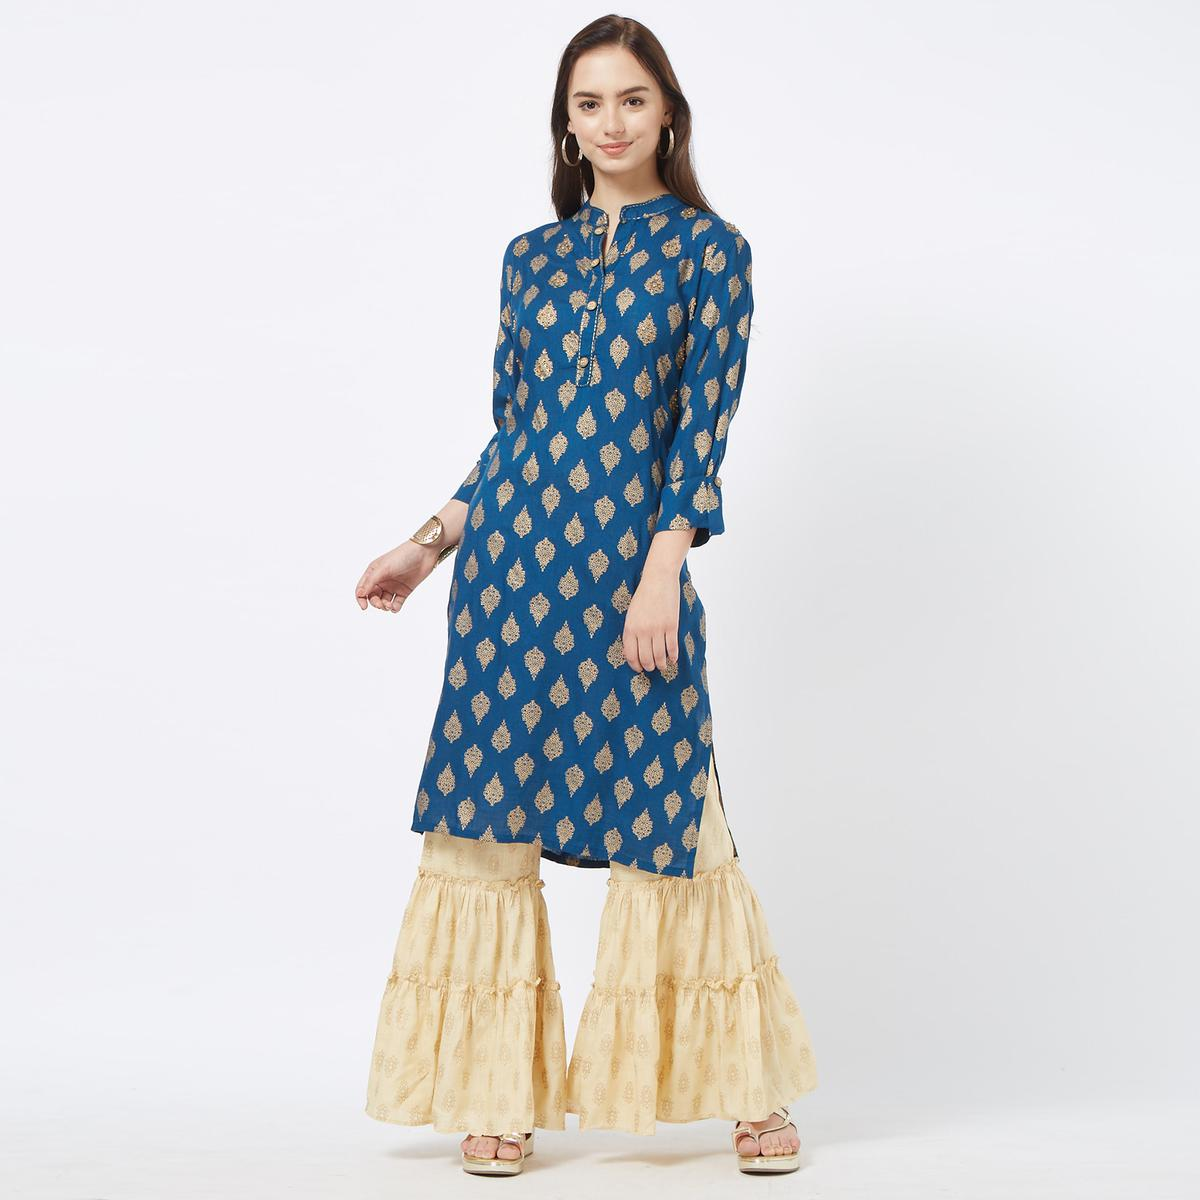 Adorning Blue Colored Partywear Foil Printed Cotton Palazzo Suit